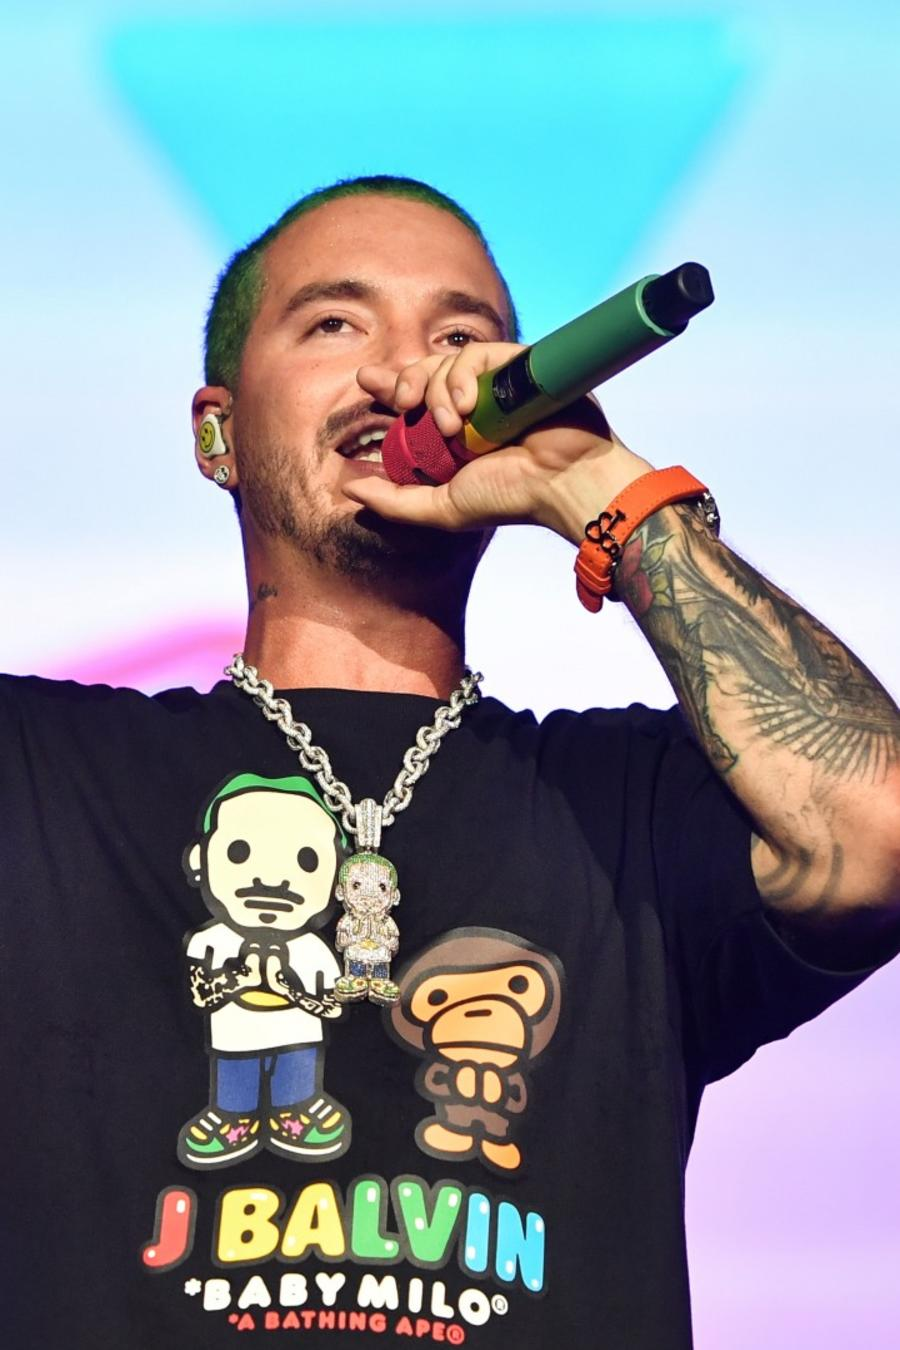 J Balvin makes history at Lollapalooza